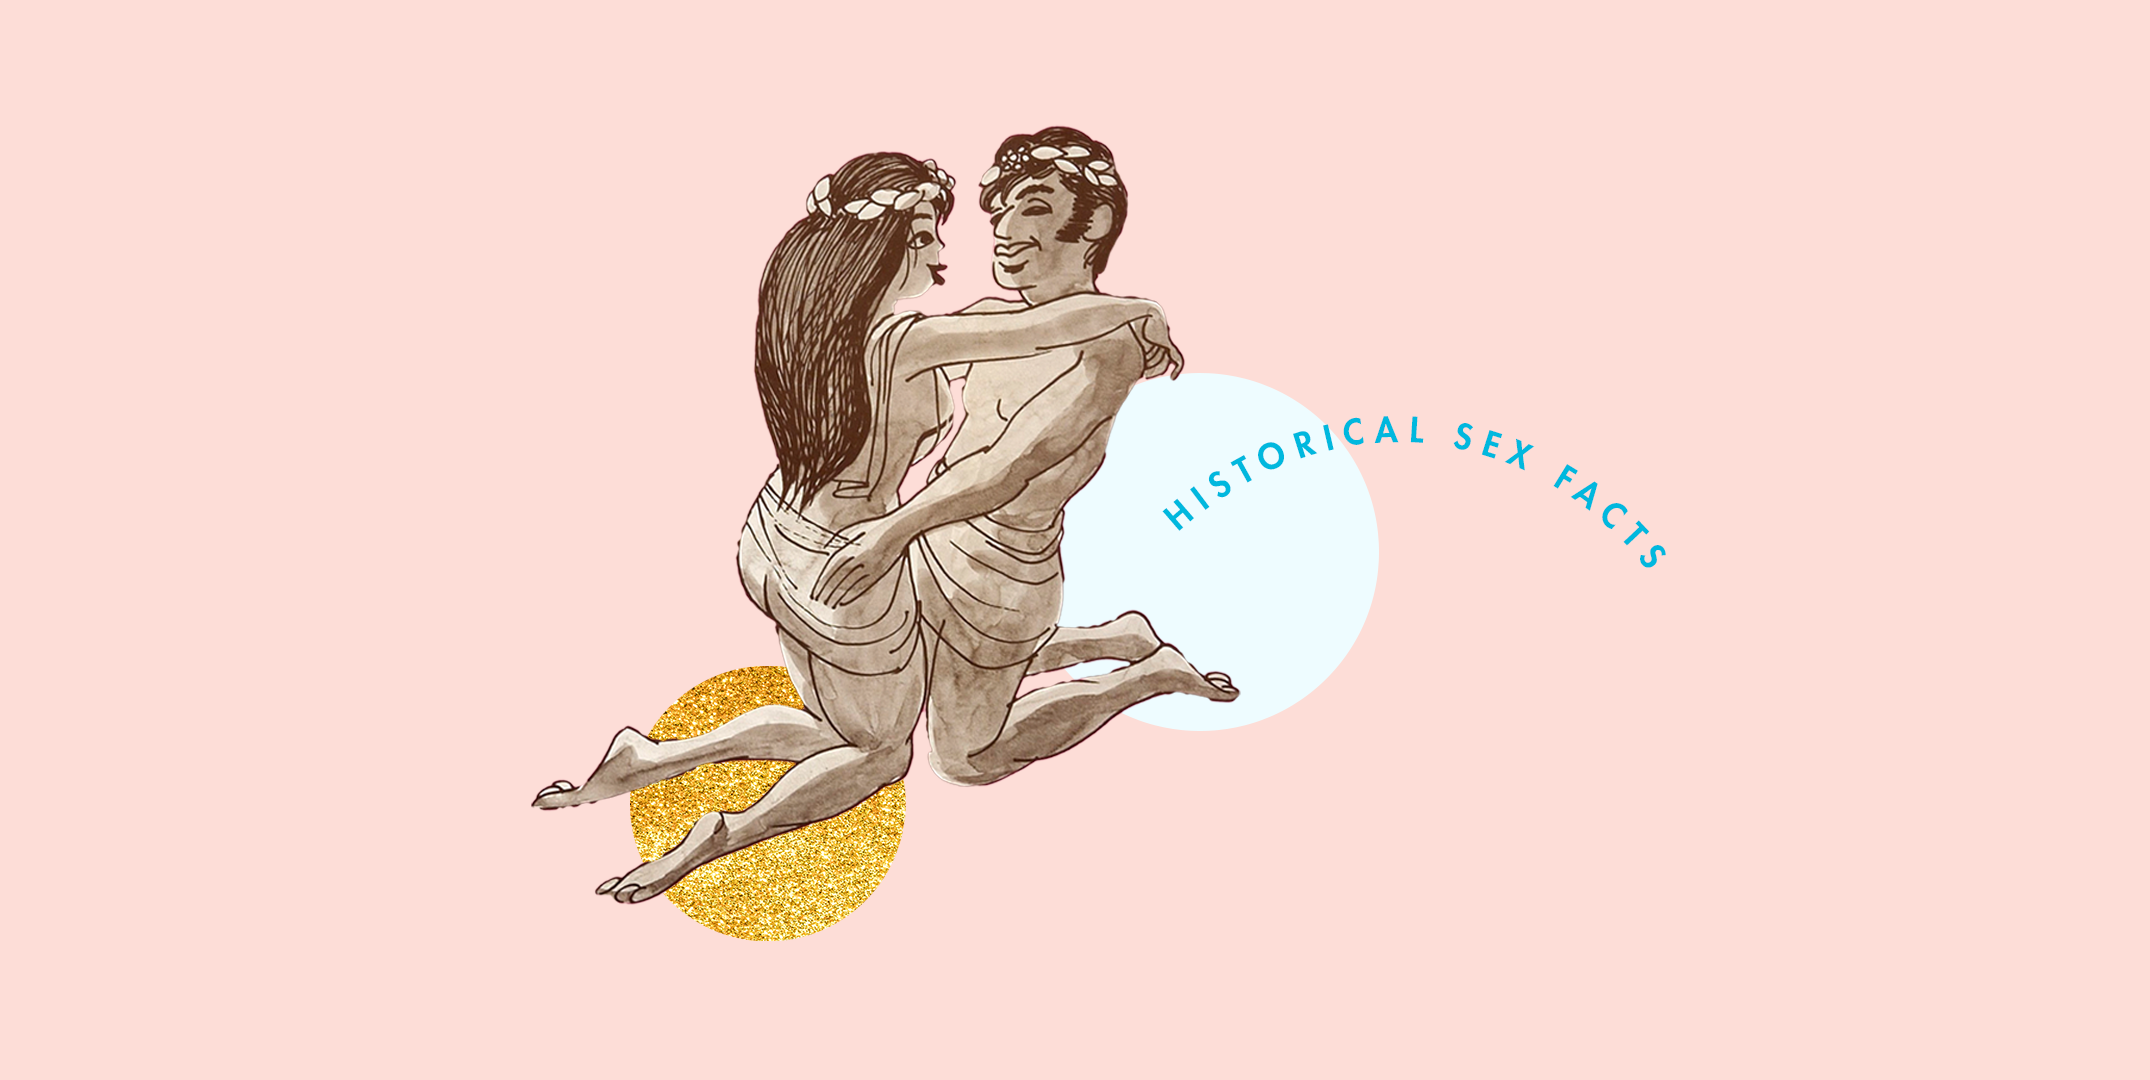 13 Historical Sex Facts You Def Didn't Learn in School (But Should Have, TBH)